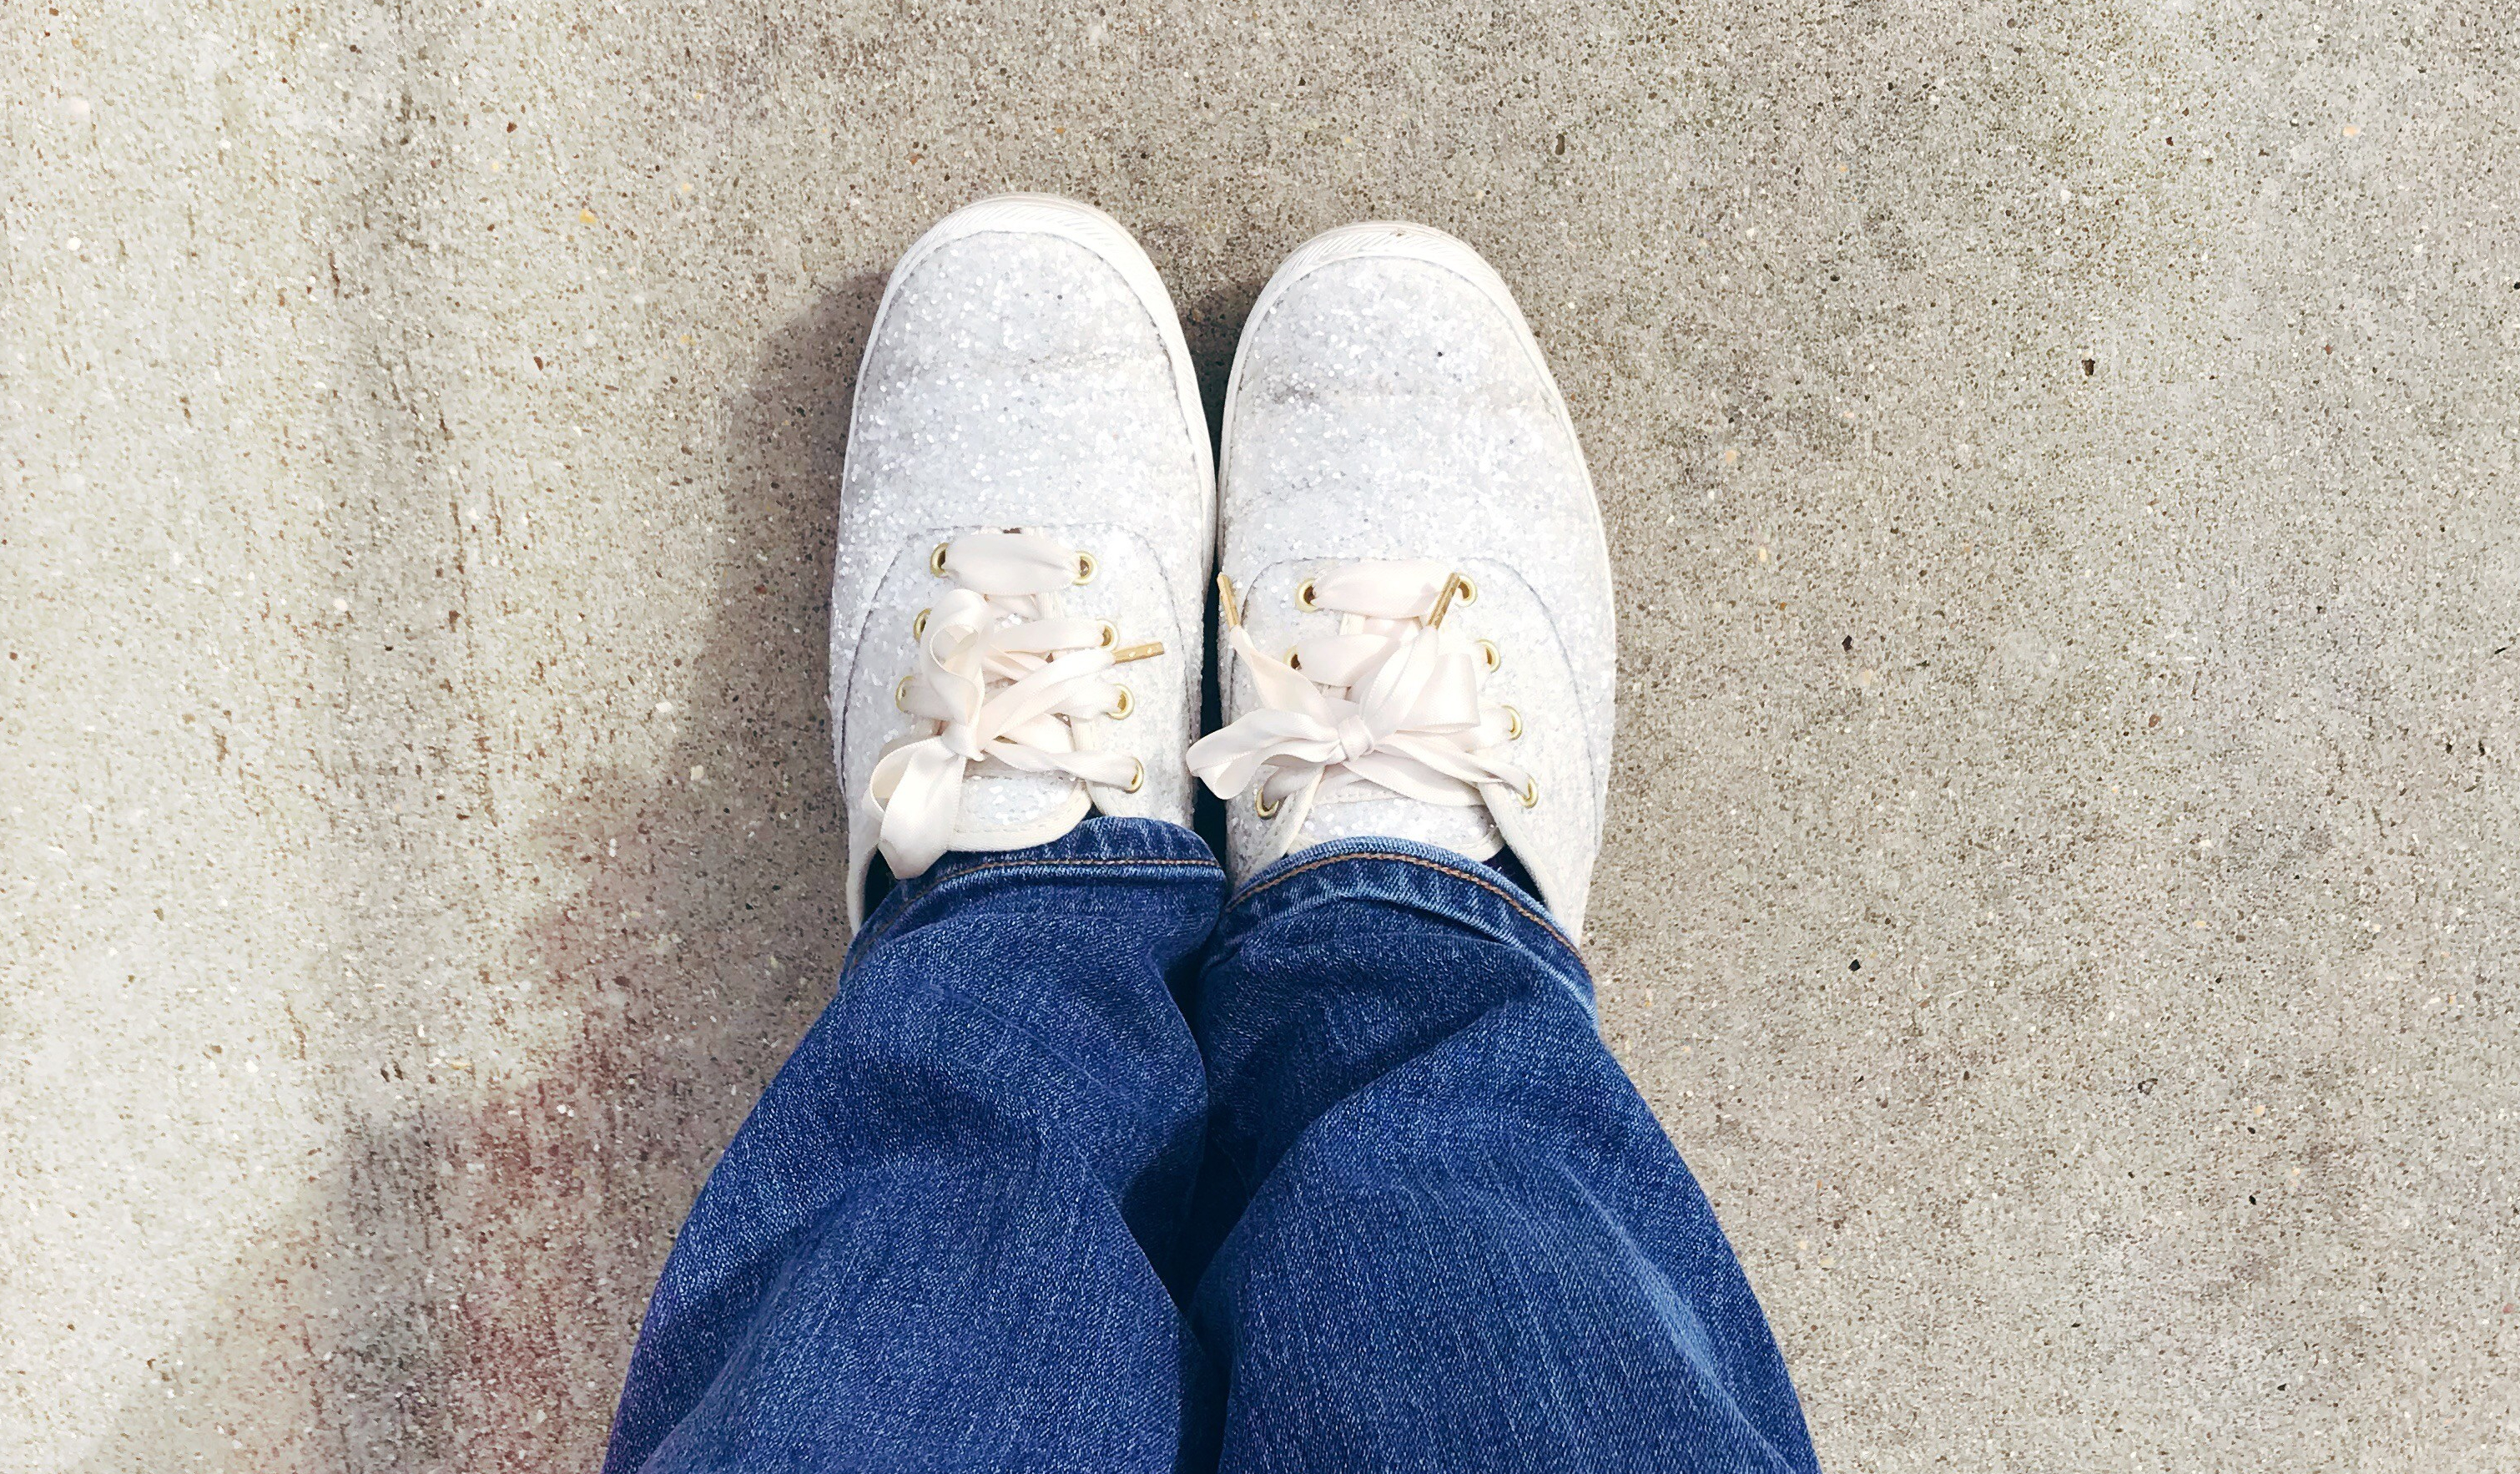 white glitter shoes on concrete